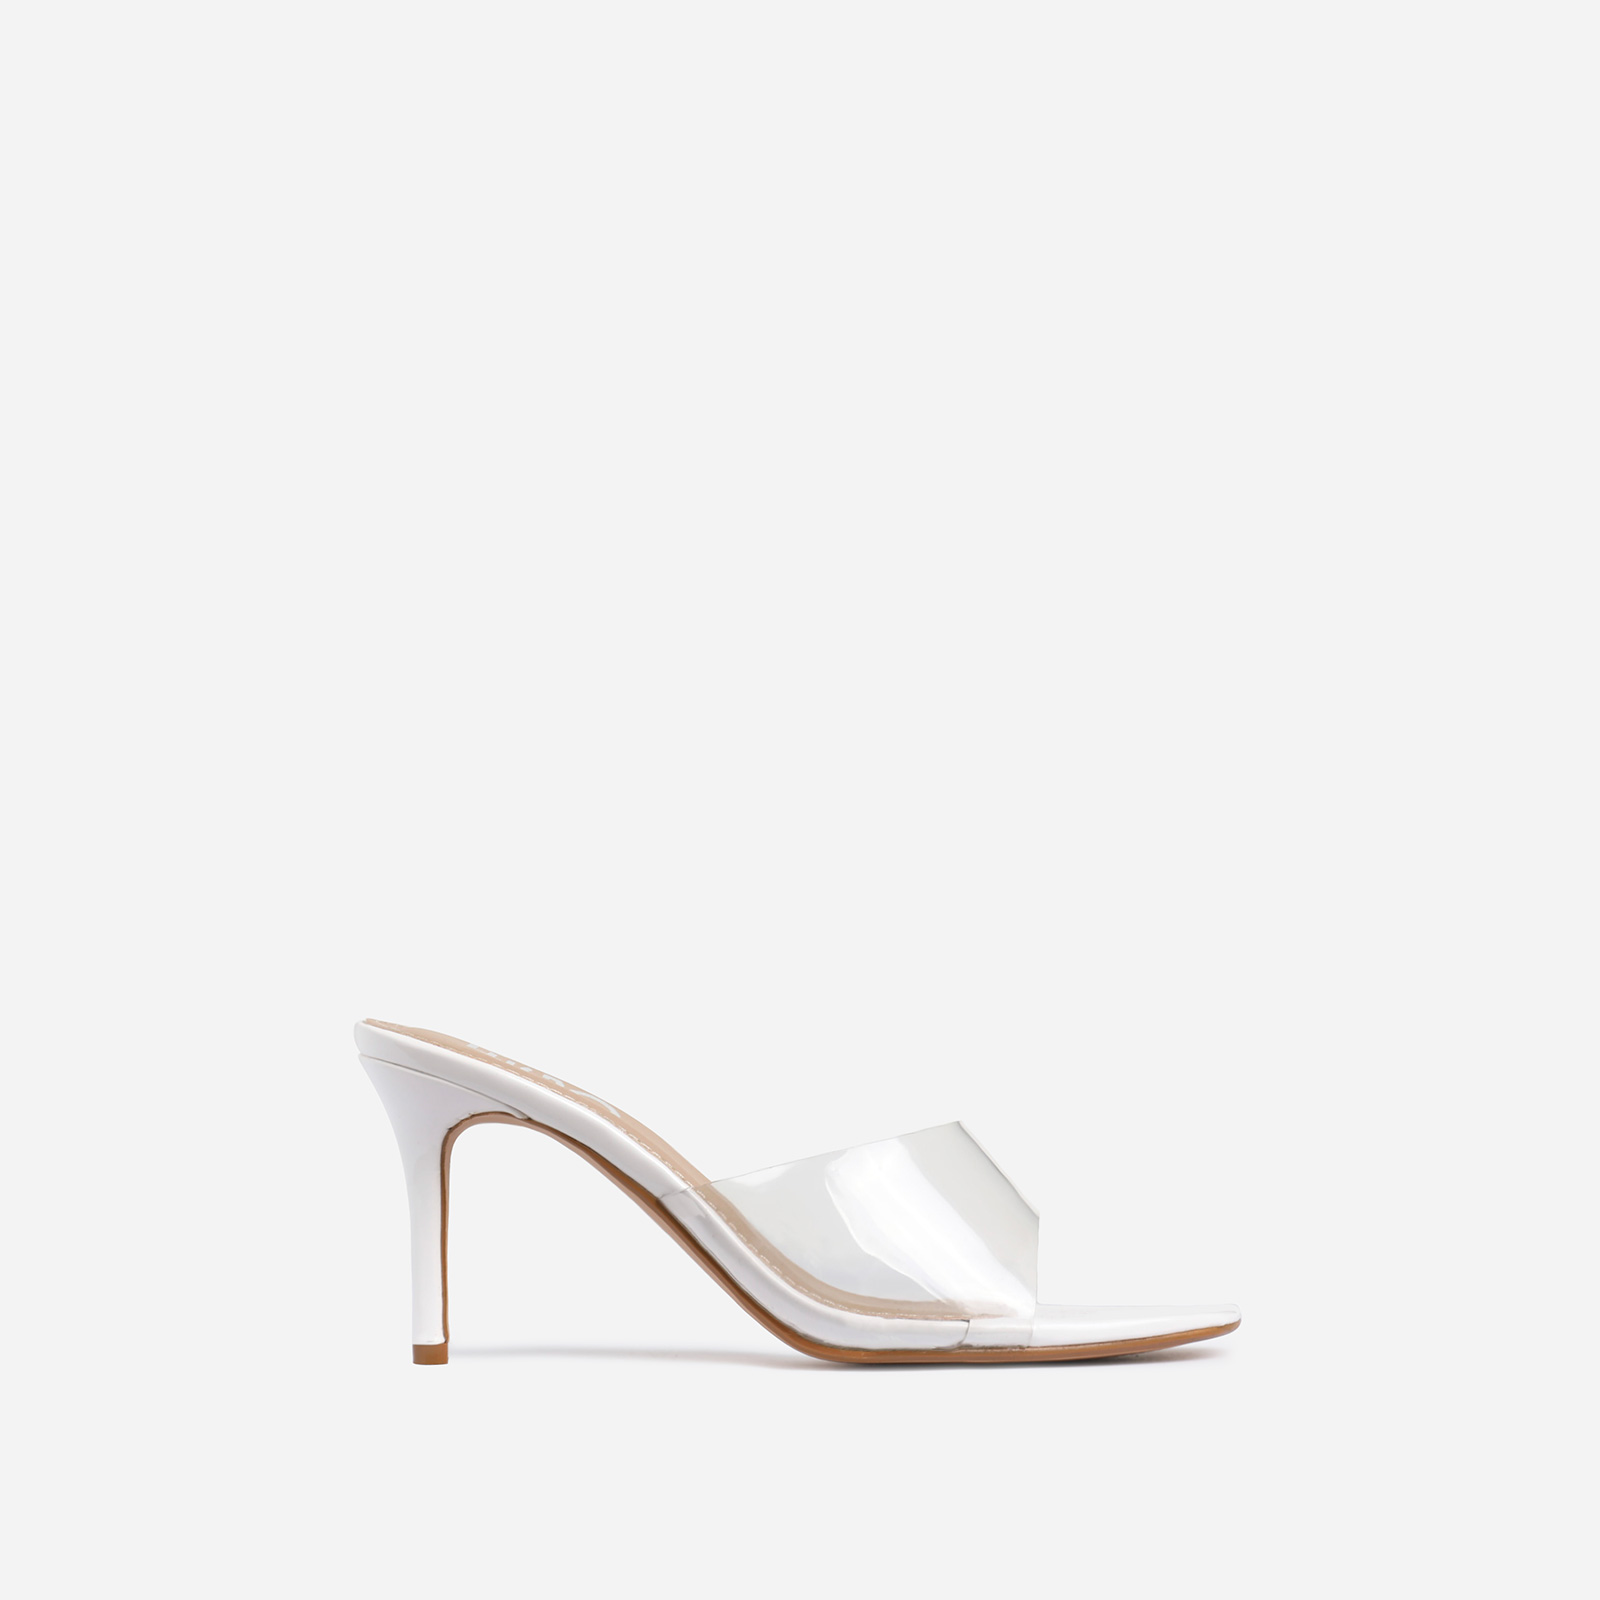 Rexa Square Peep Toe Clear Perspex Kitten Heel Mule In White Patent